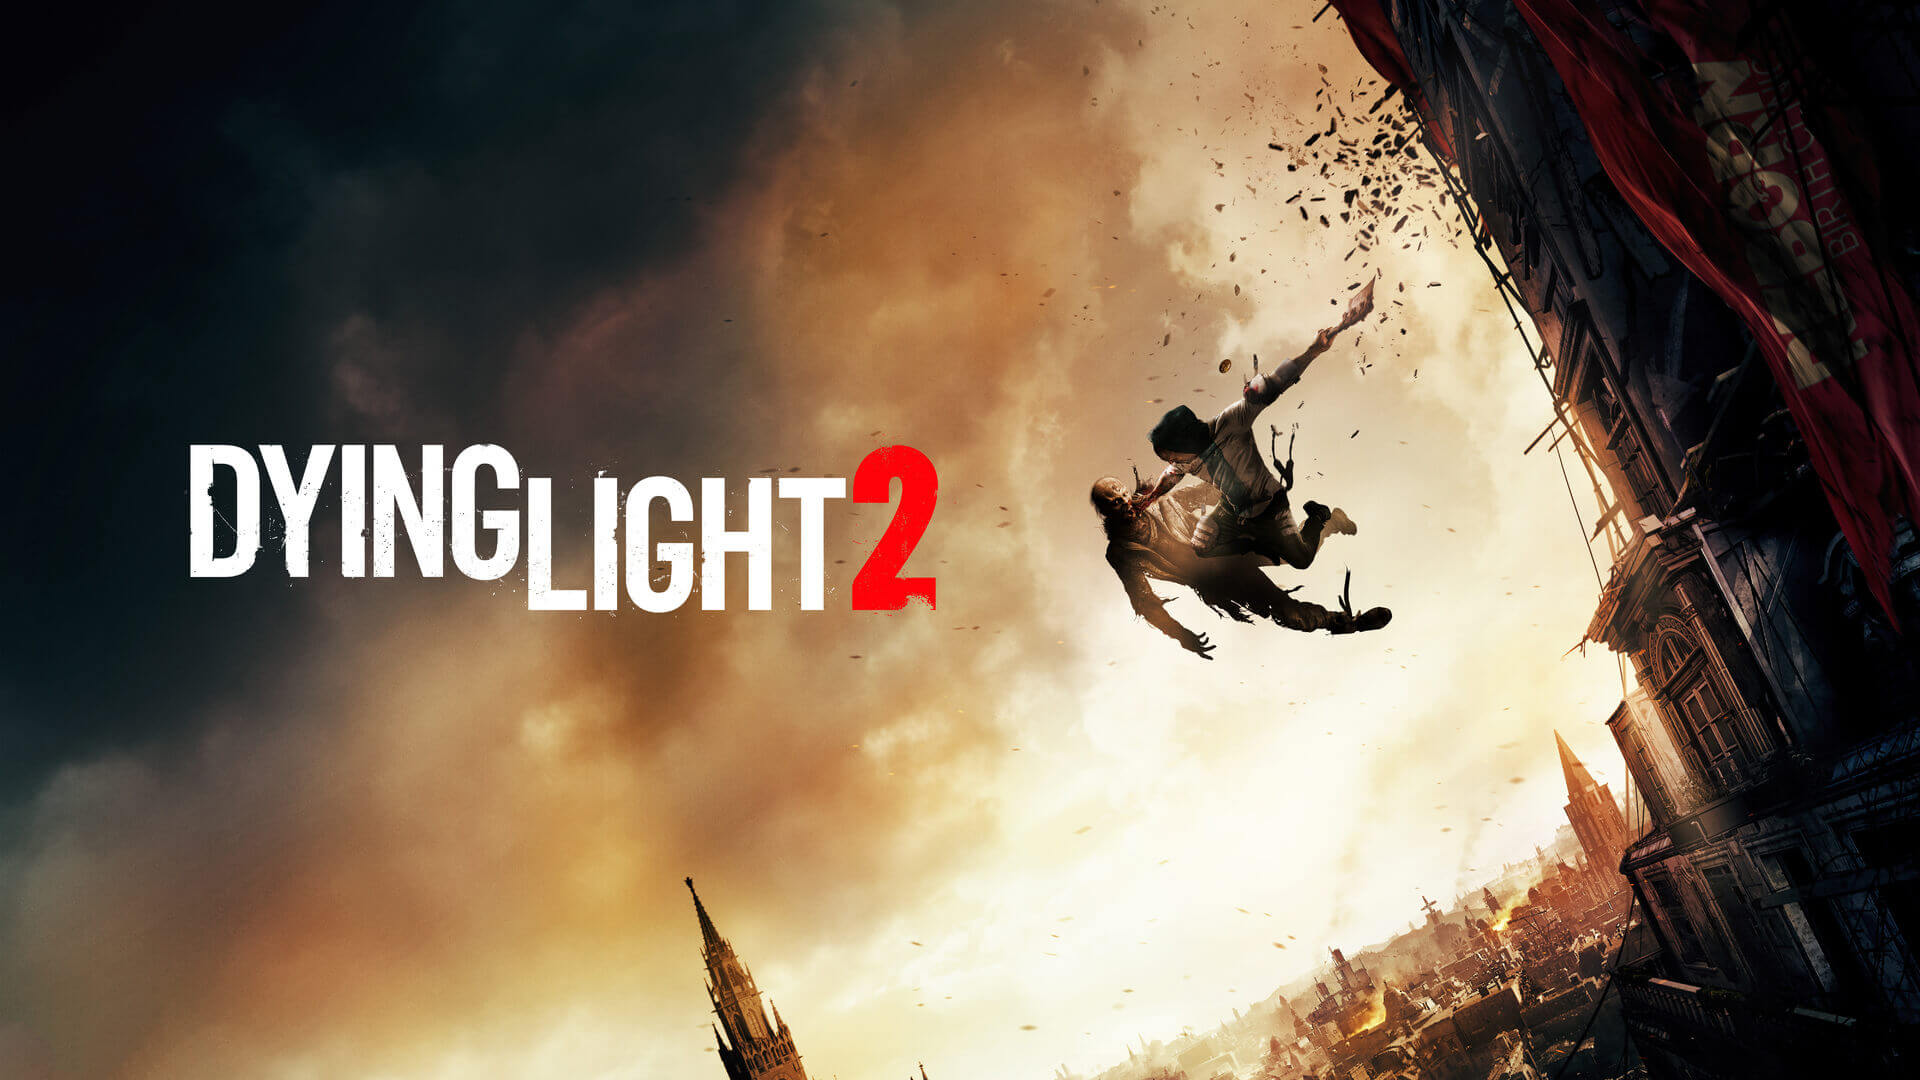 Dying Light 2 Delayed, No Renewed Release Date